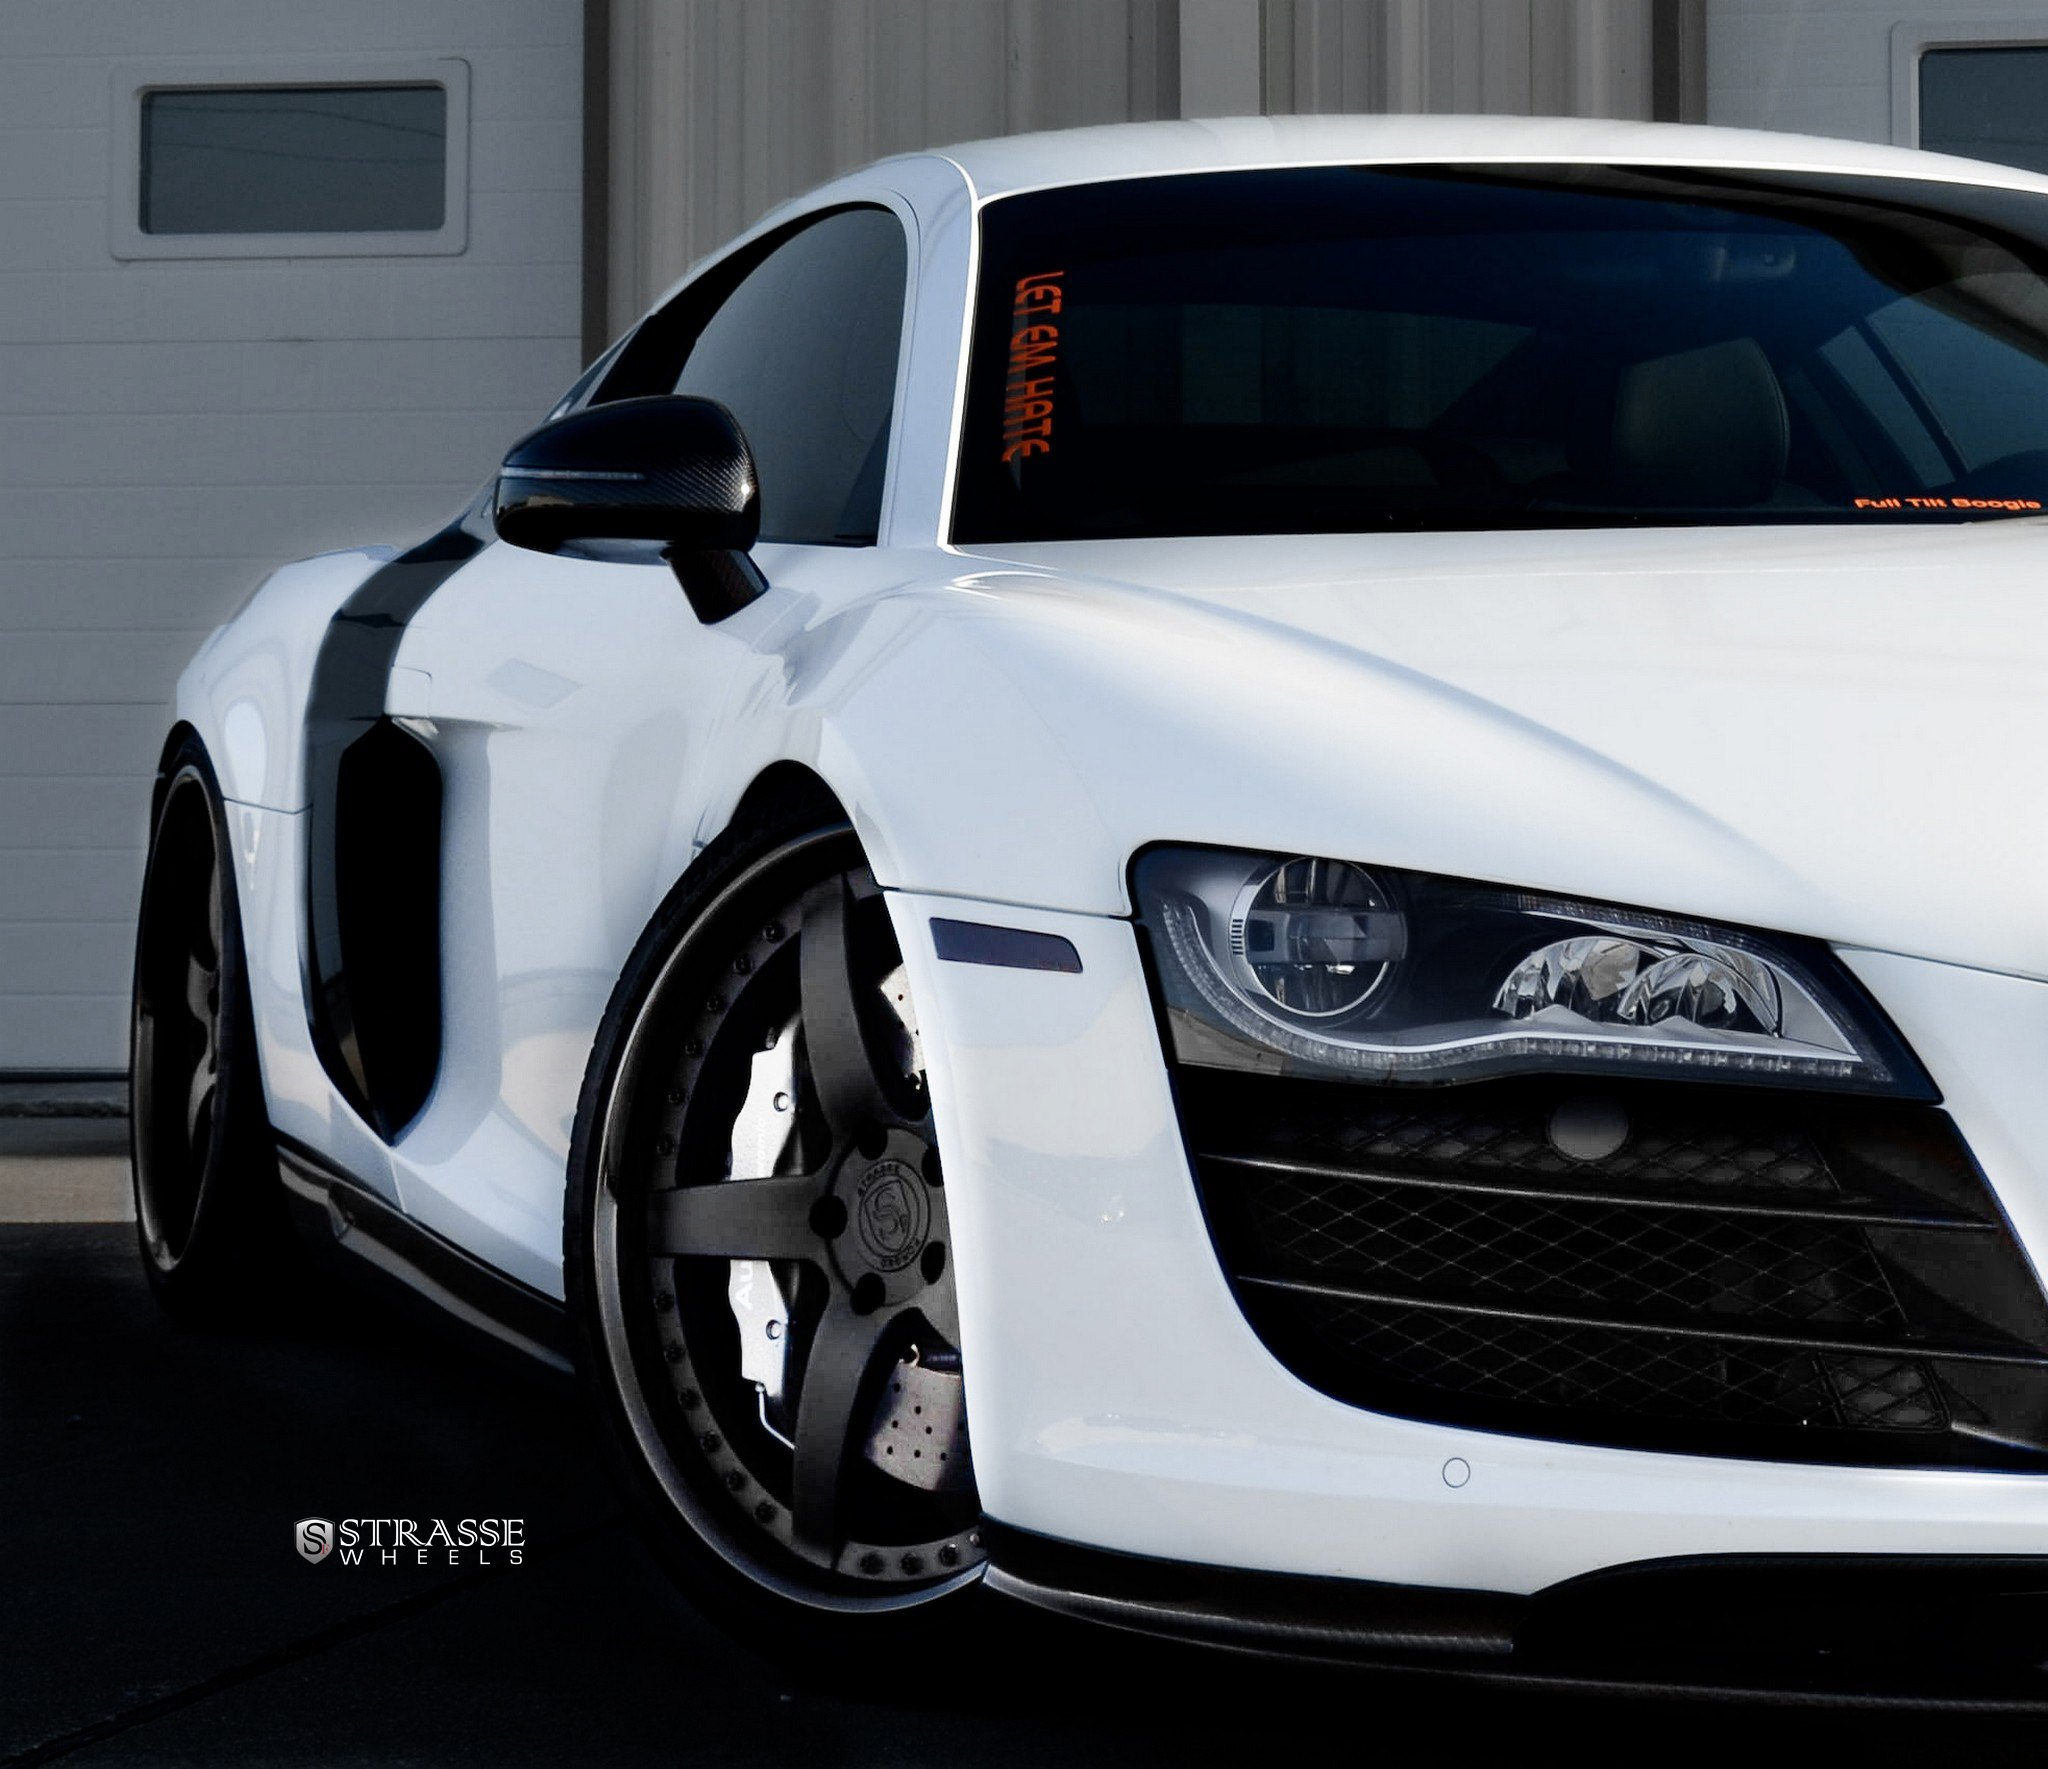 Audi R8: Extremely Stylish White Audi R8 Enhanced By Blacked Out